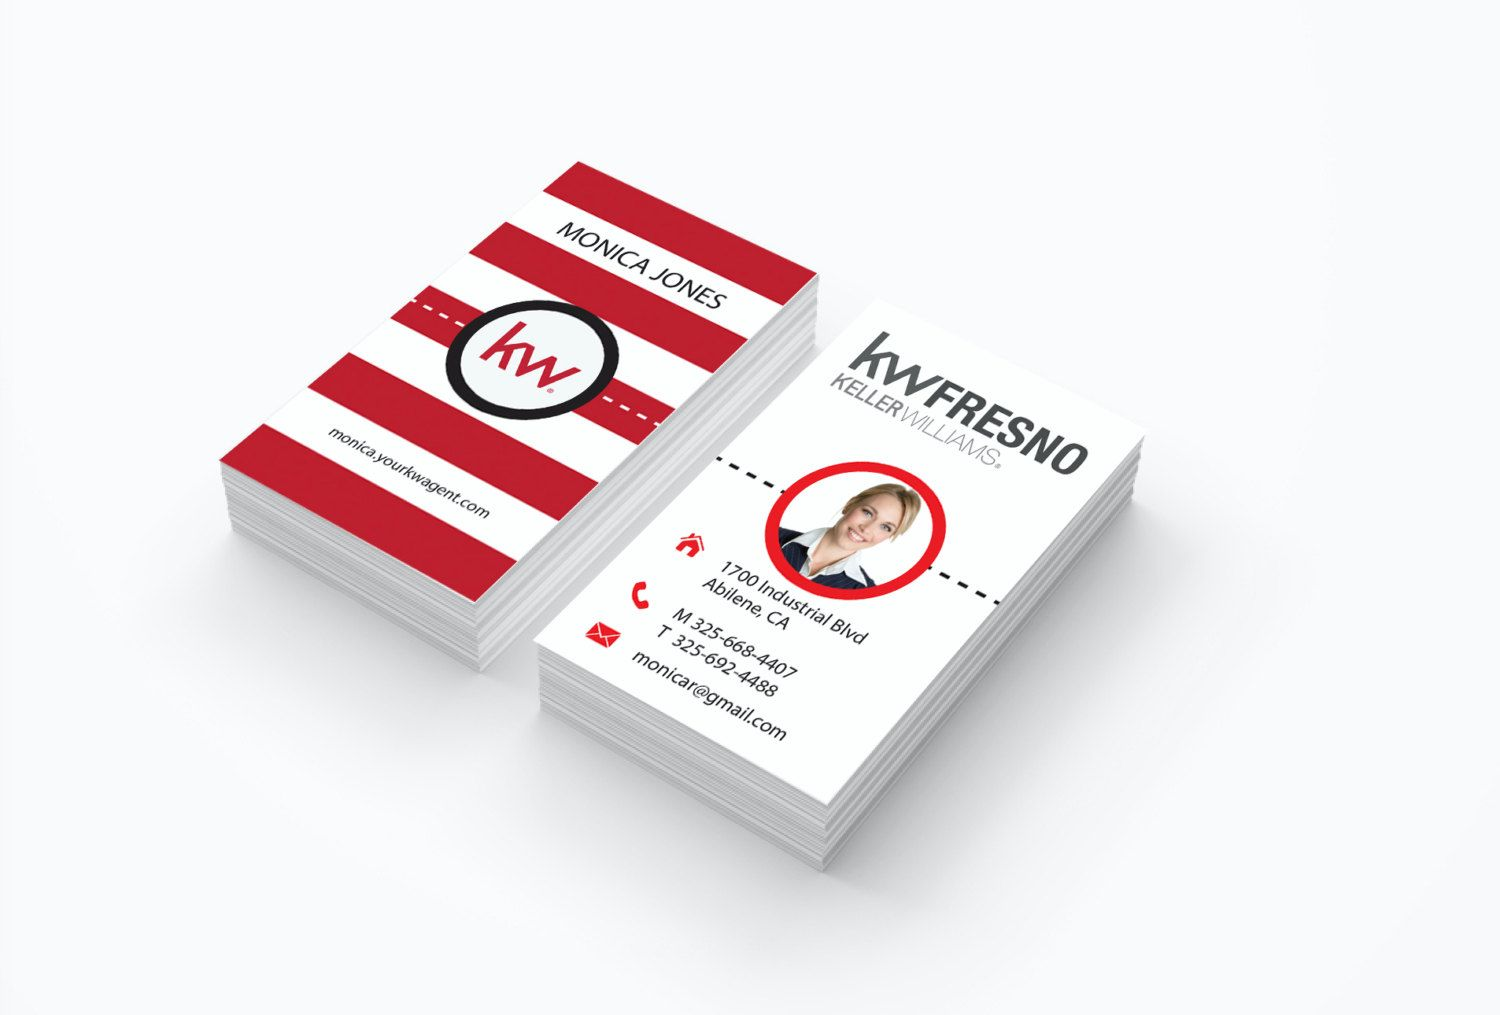 Cheap custom real estate business cards red stripes modern realtor cheap custom real estate business cards red stripes modern realtor gloss or matte color reheart Image collections